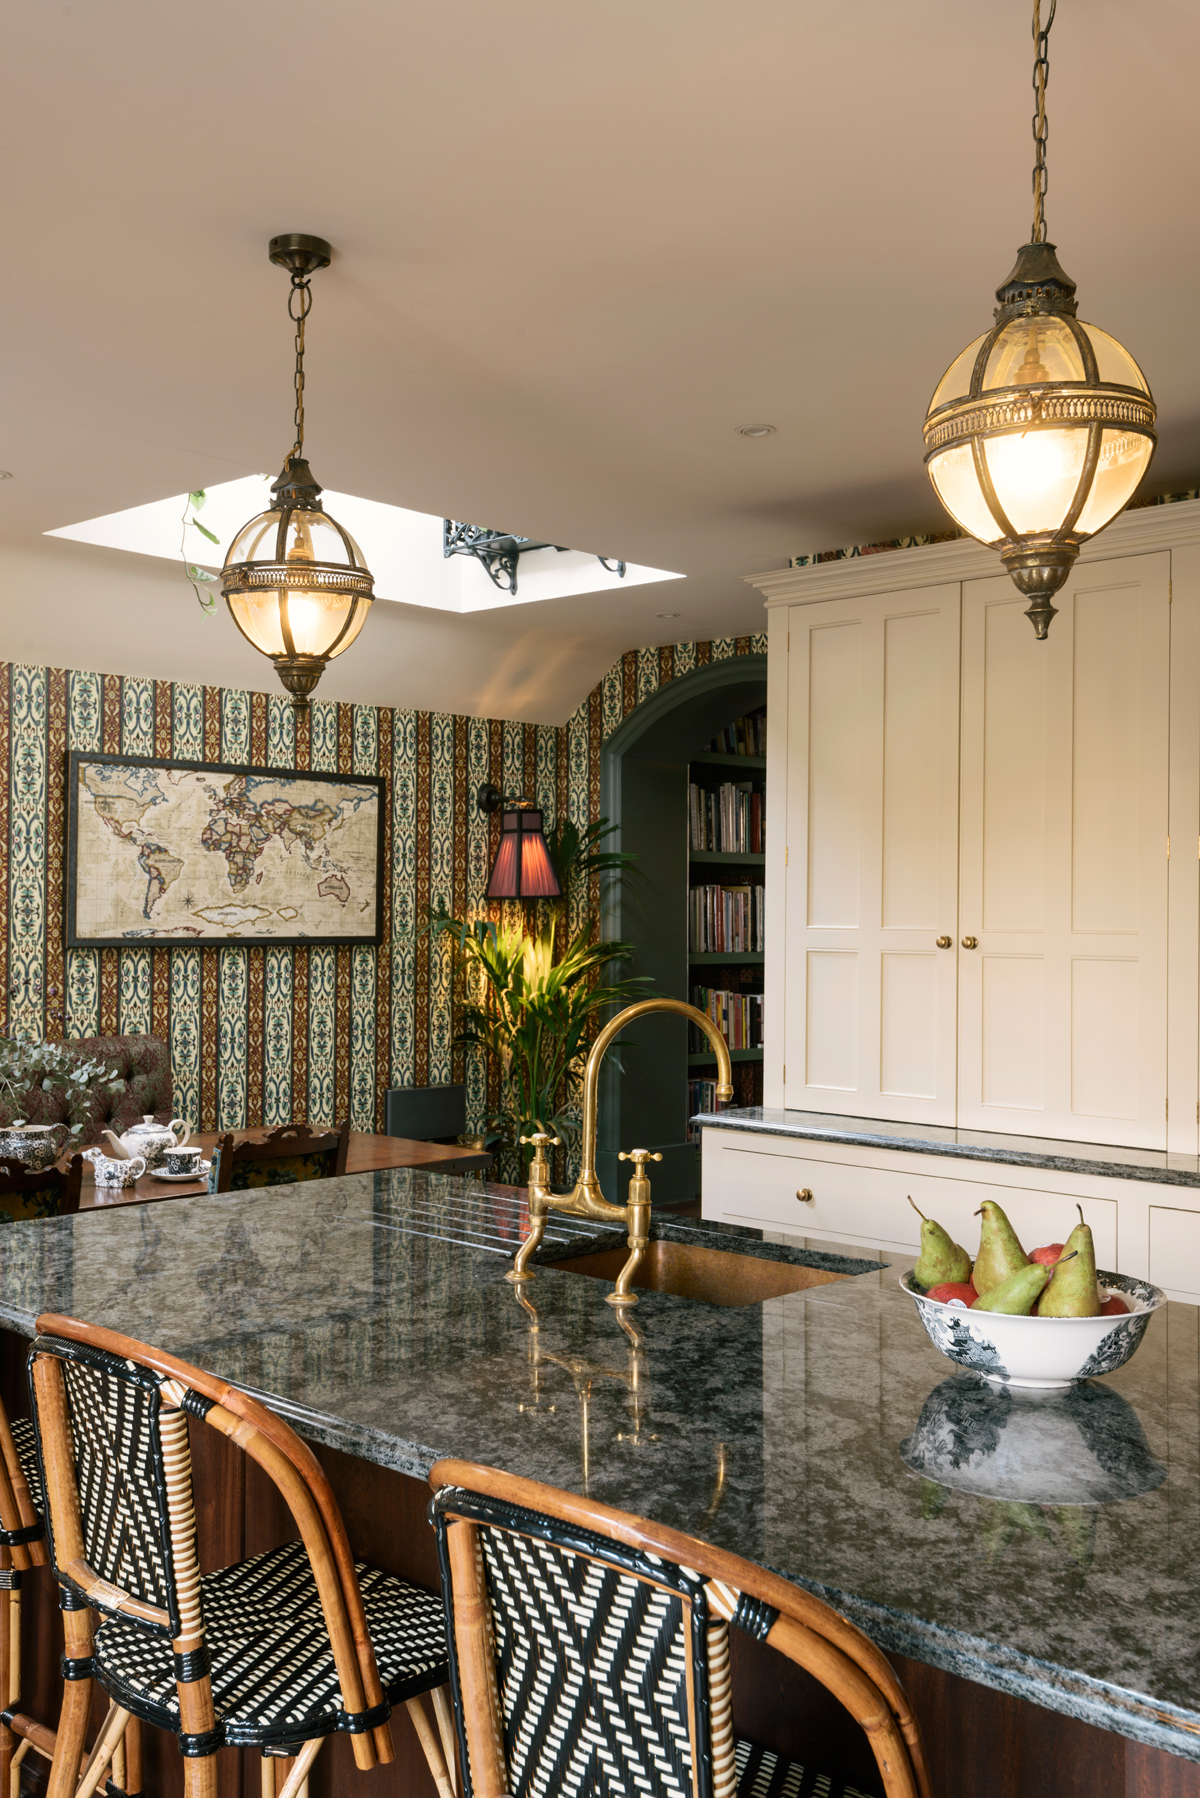 Tall bespoke cupboards painted in Linen kept the room feeling bright and fresh.